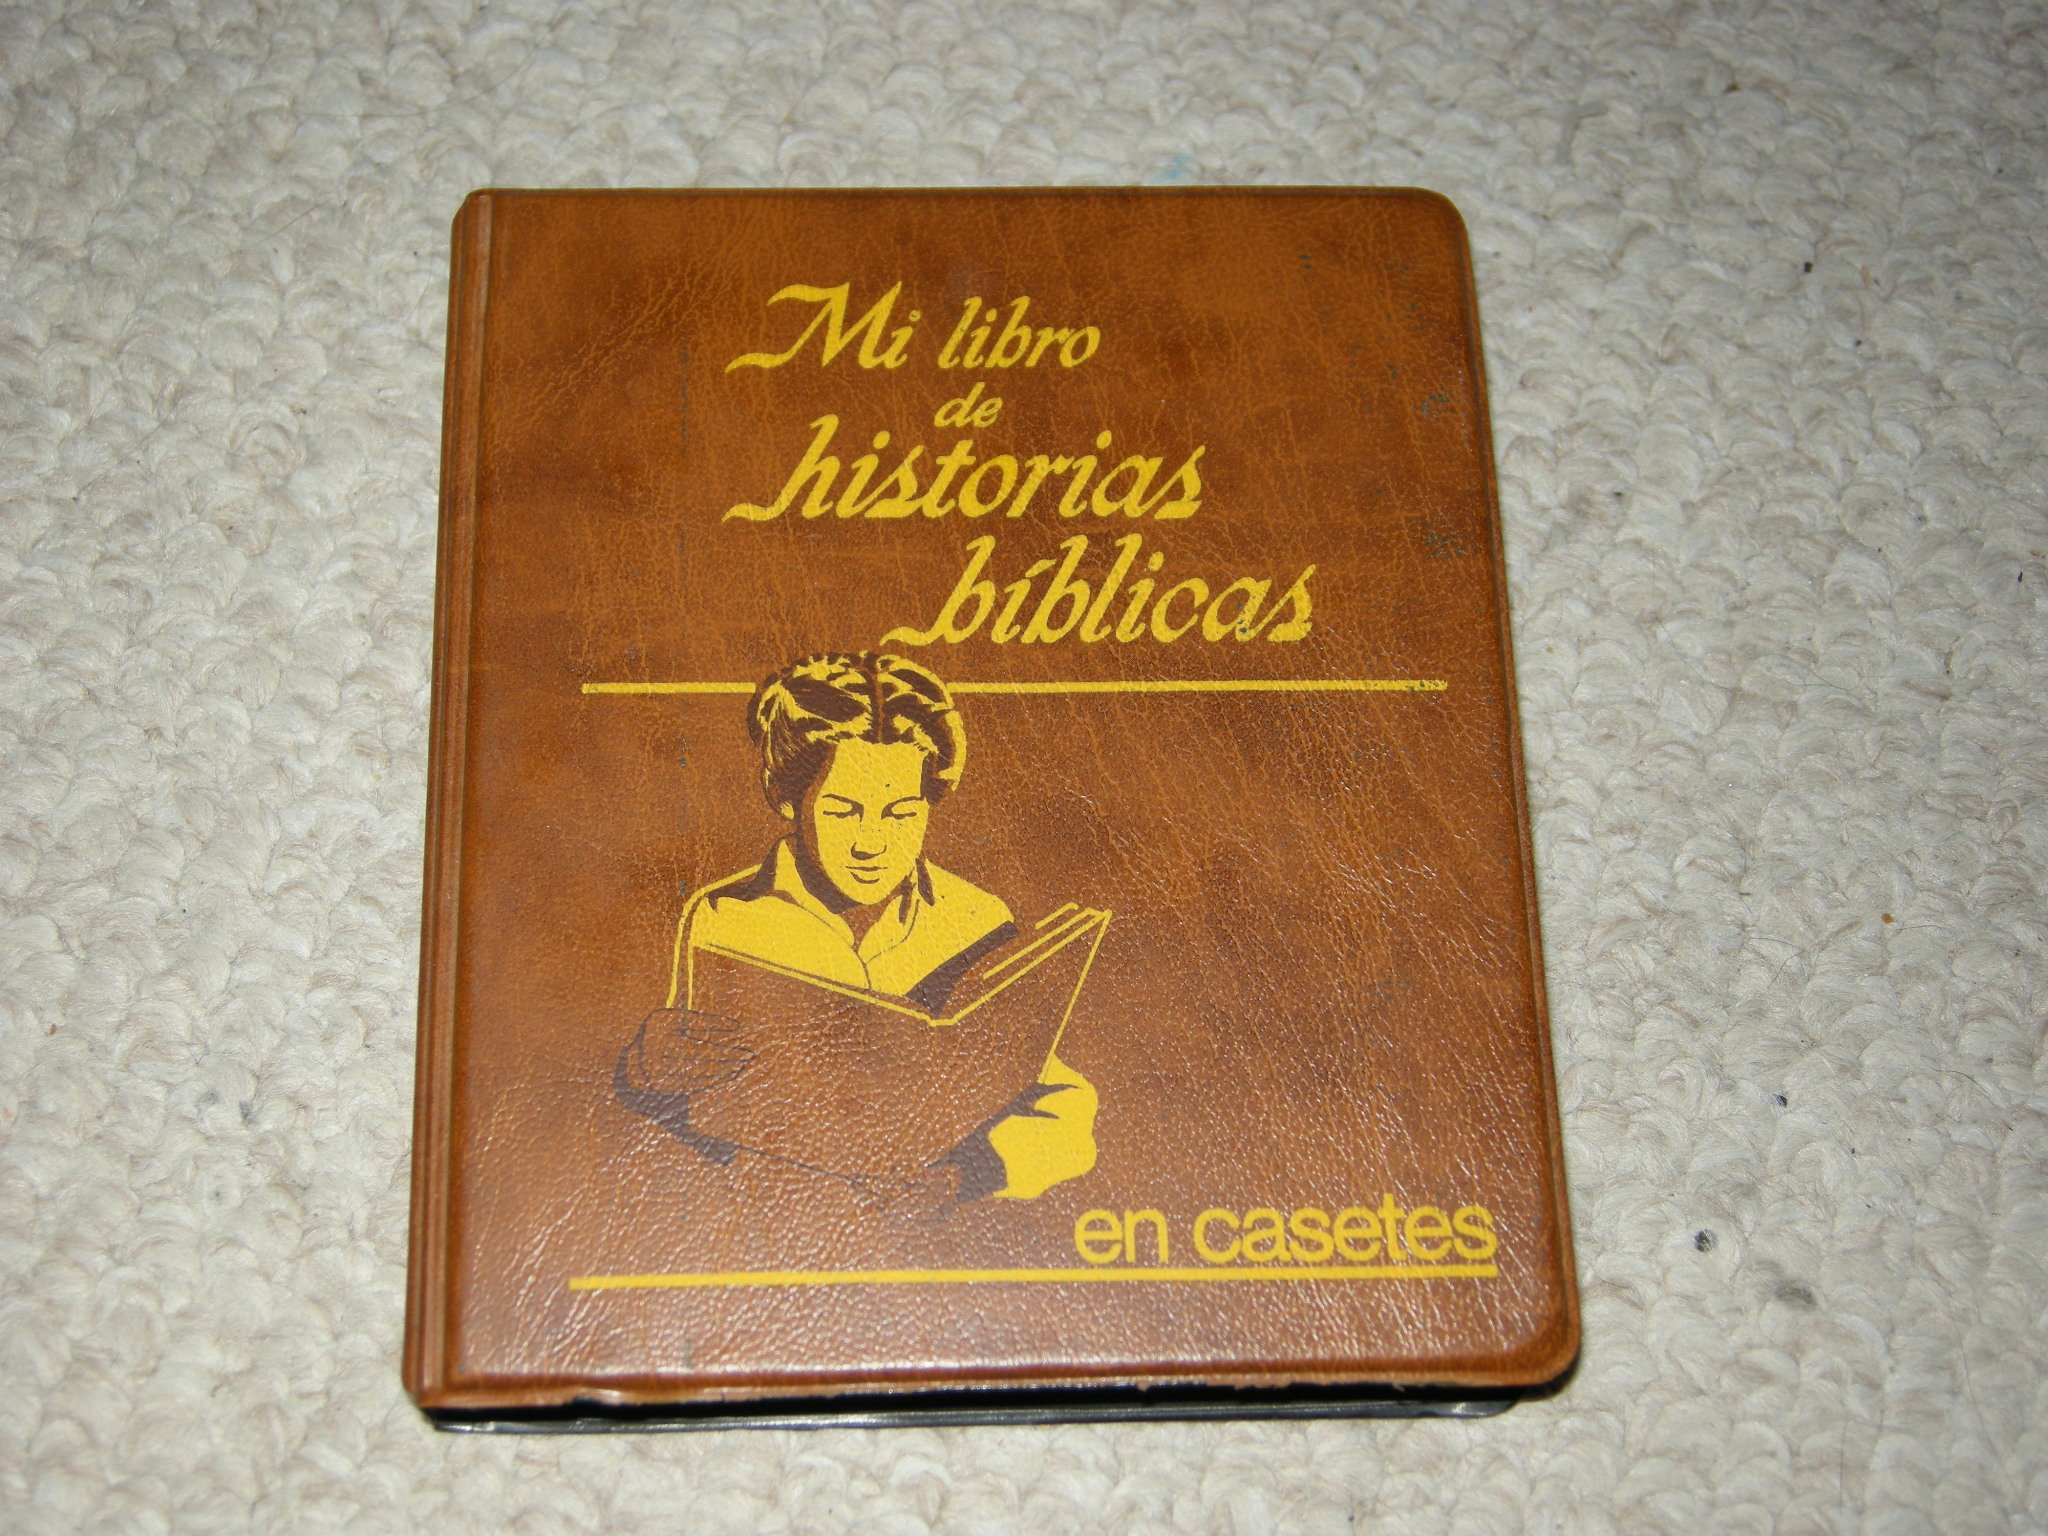 Mi libro de historias biblicas (Historias biblicas, Volume 1): THE BOOK OF BIBLE STORIES IN SPANISH: Amazon.com: Books